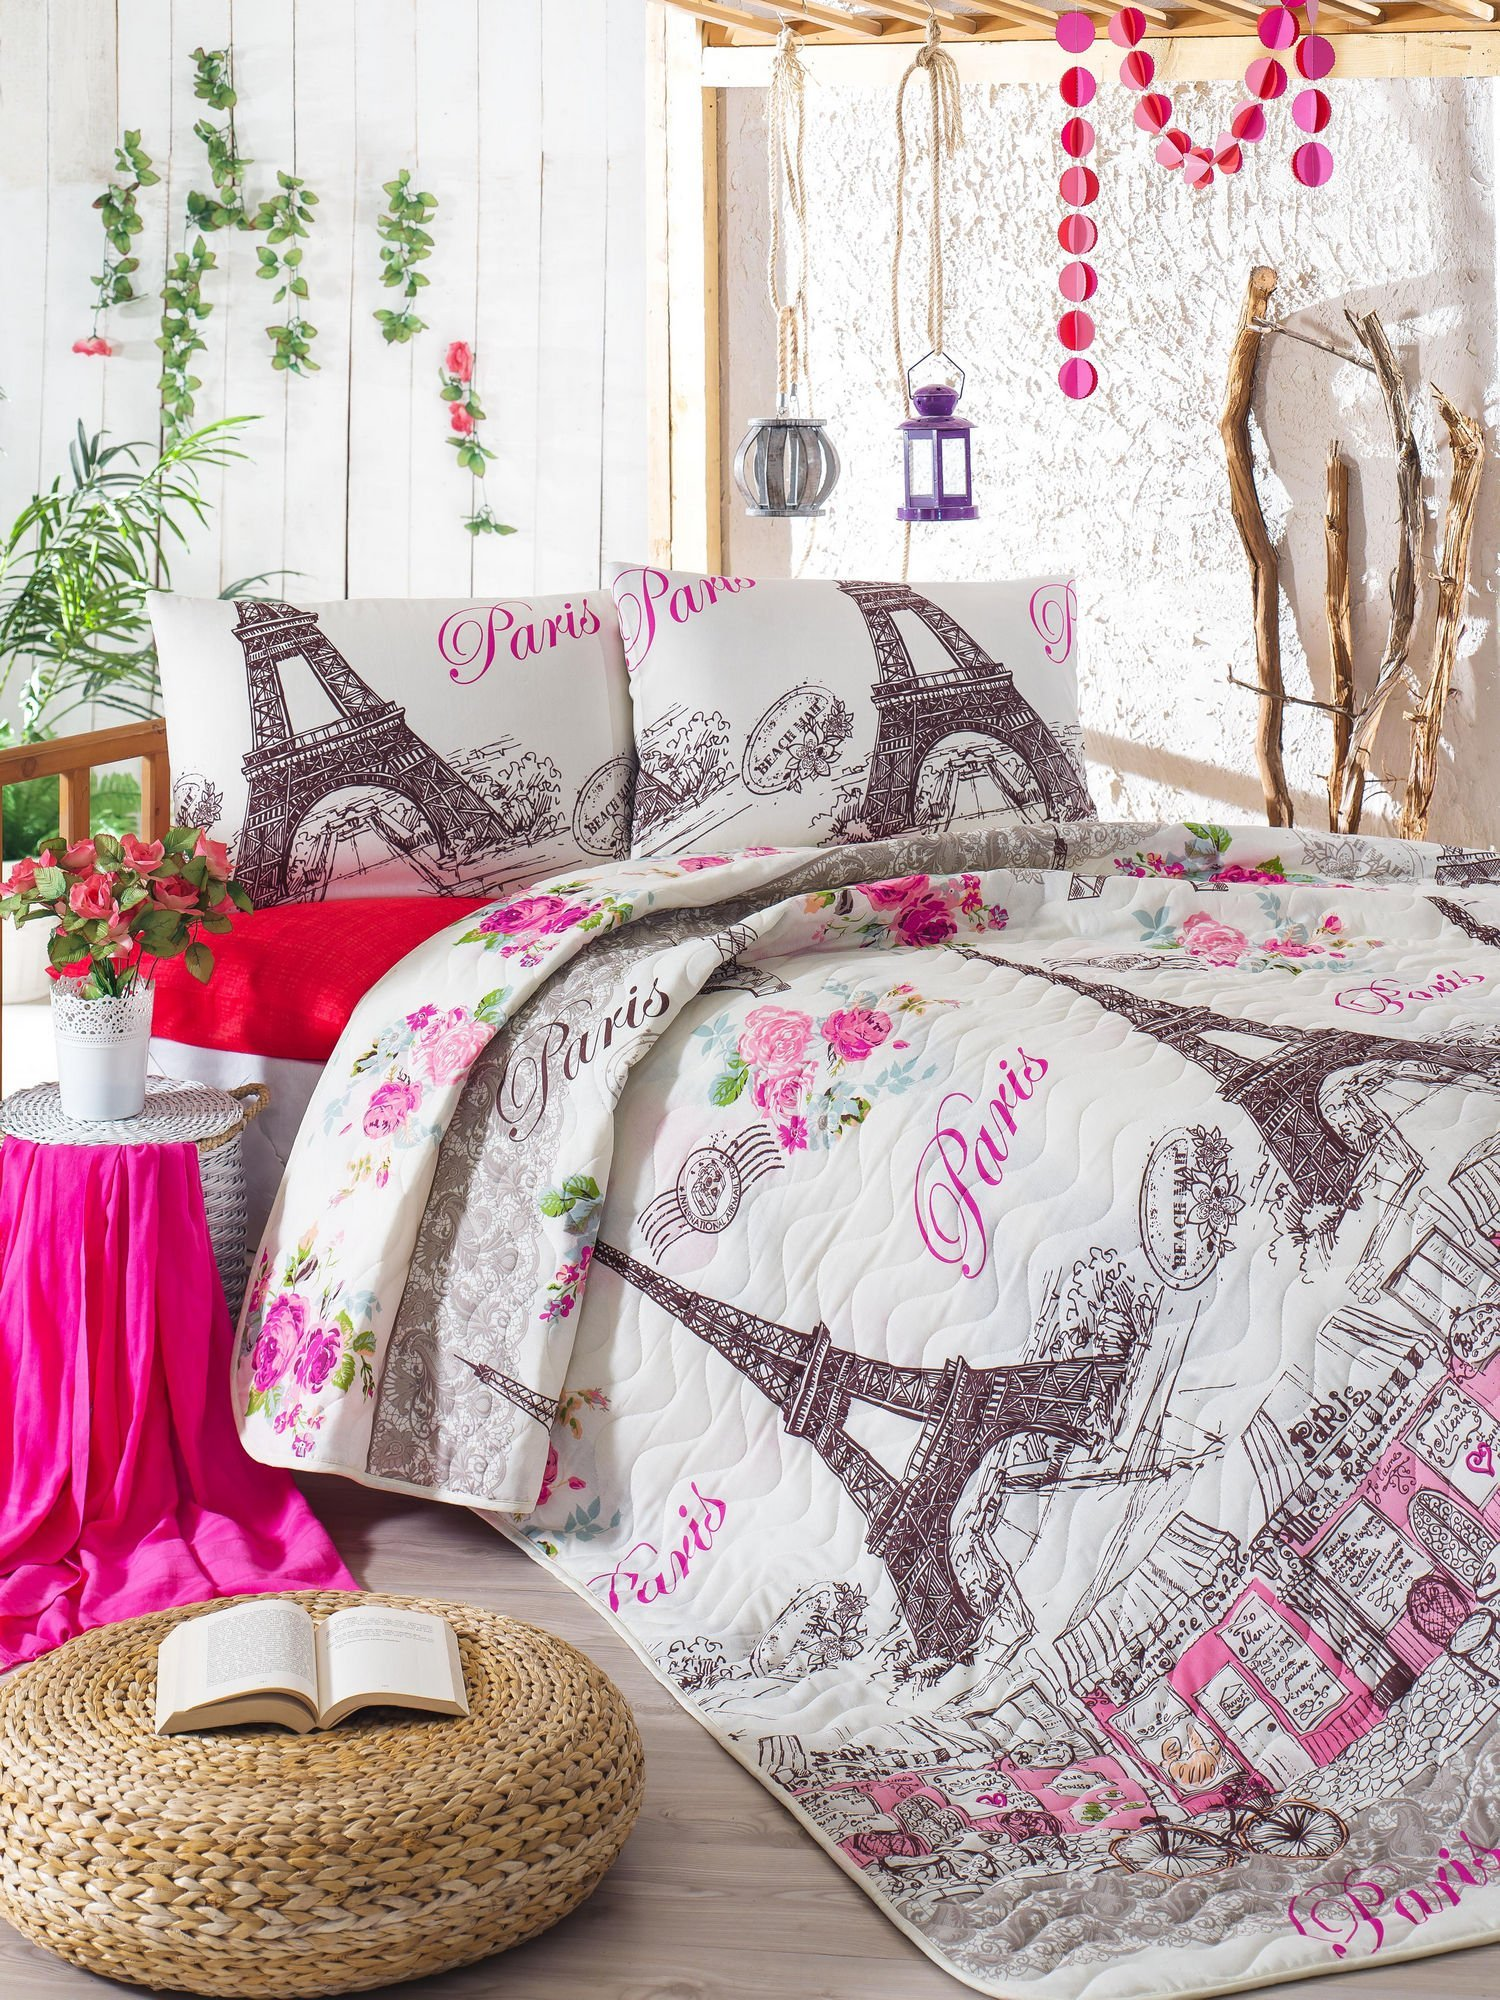 LaModaHome Paris Bedding Set, 65% Cotton 35% Polyester - Eiffel Tower View with Colorful Flowers - Set of 3-100% Fiber Filling Coverlet and 2 Pillowcases for Full Bed